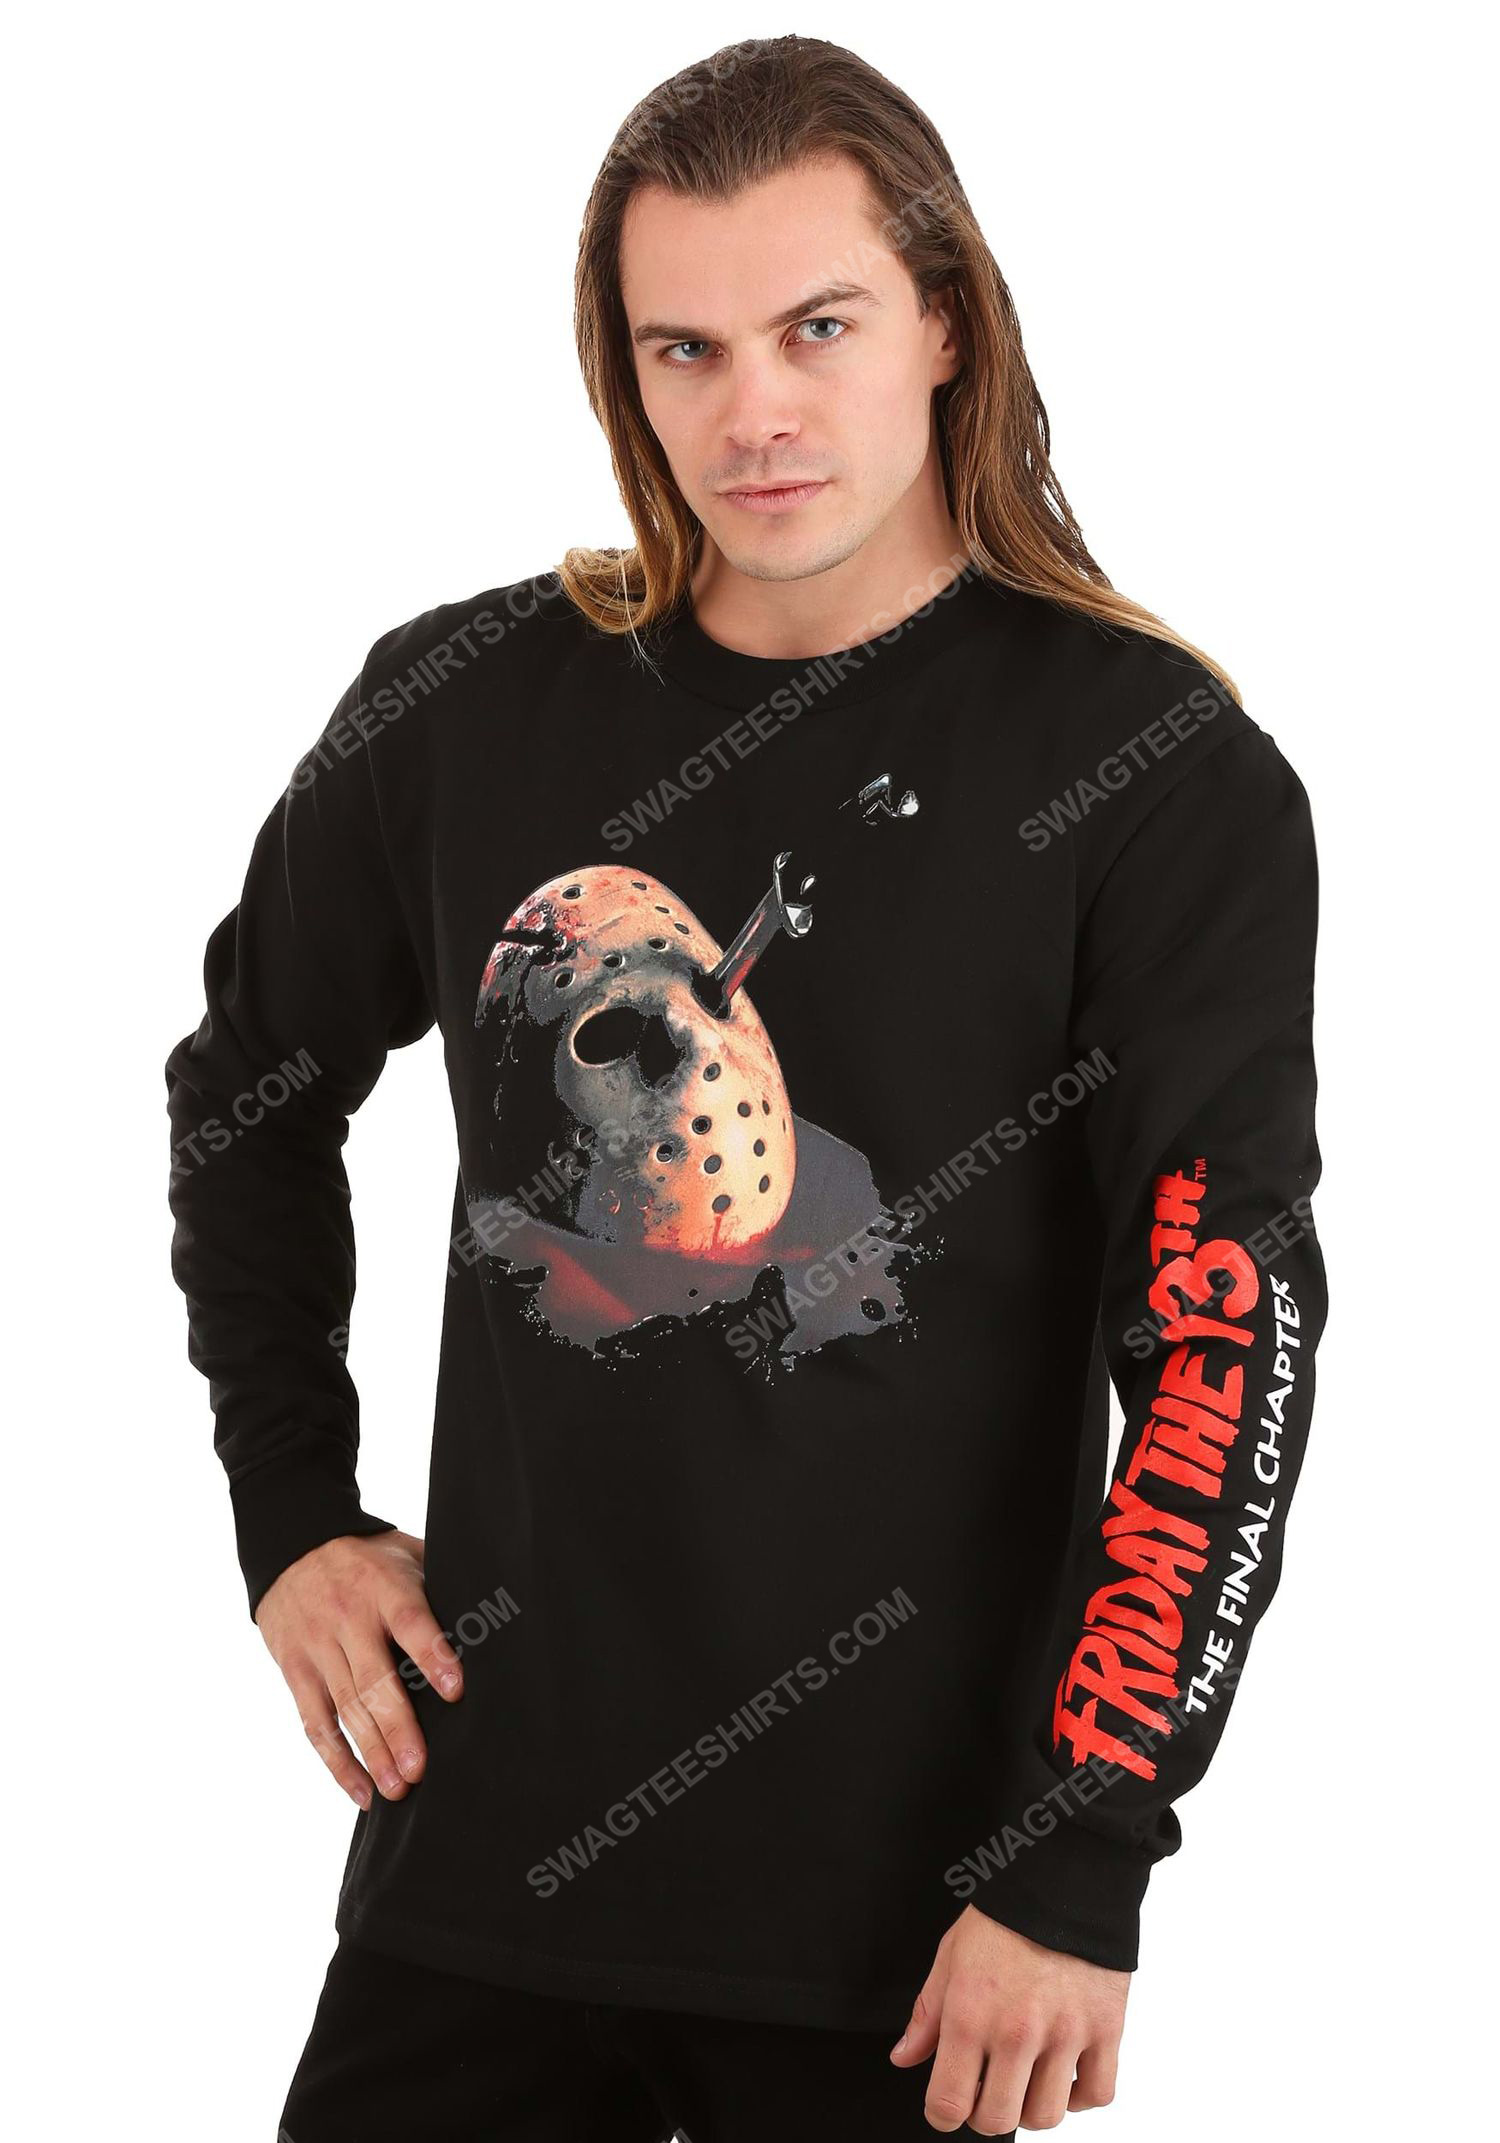 Halloween friday the 13th the final chapter full print ugly christmas sweater 1 - Copy (2)